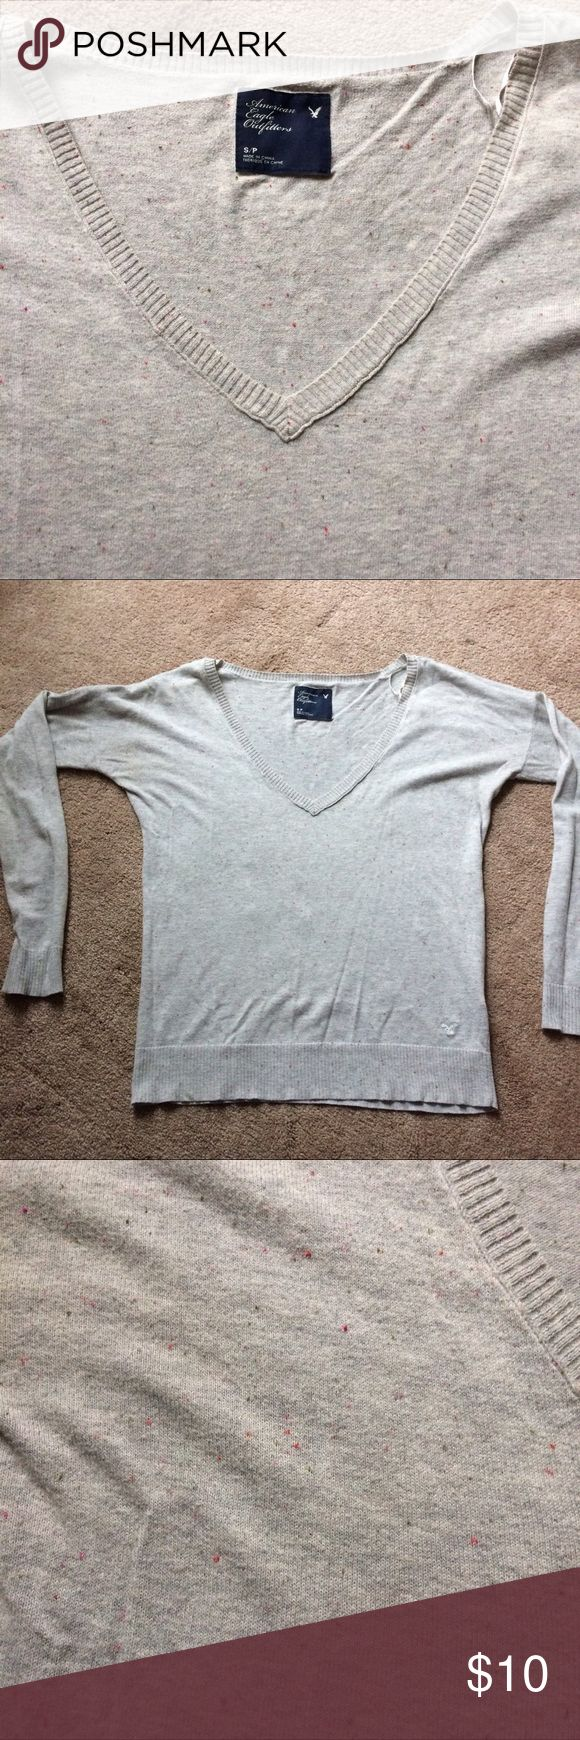 American Eagle lightweight top American Eagle long sleeve lightweight 100% cotton top. Gray with confetti looking spots throughout. Super cute, size small American Eagle Outfitters Tops